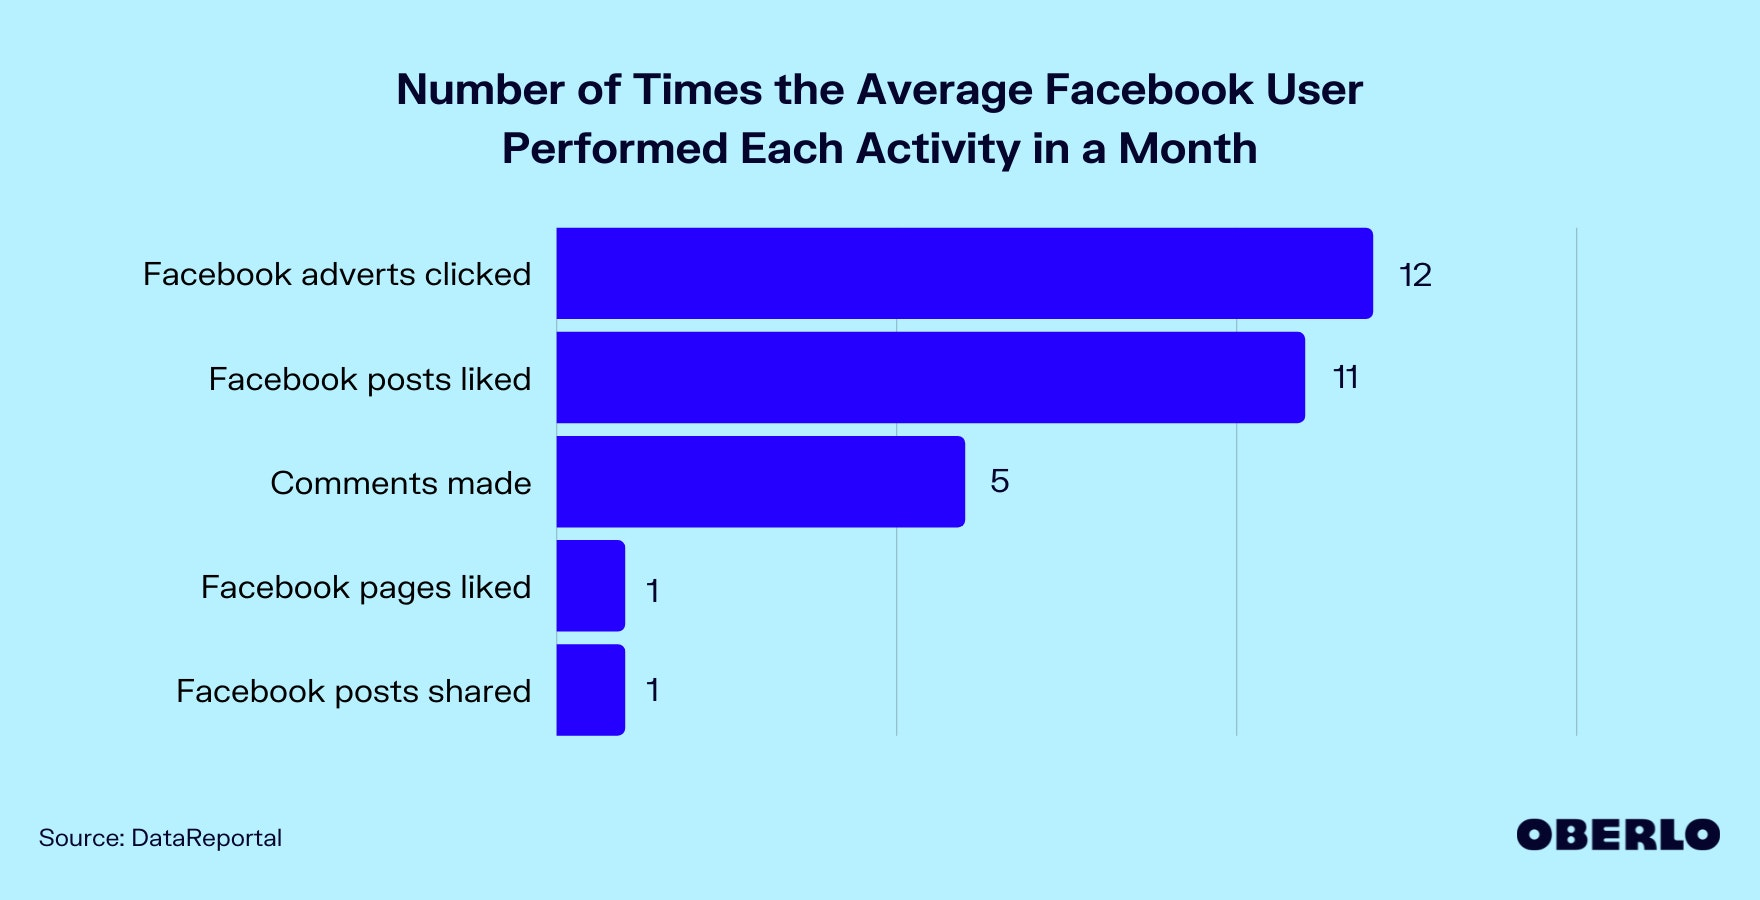 Chart of Number of Times the Average Facebook User Performed Each Activity in a Month